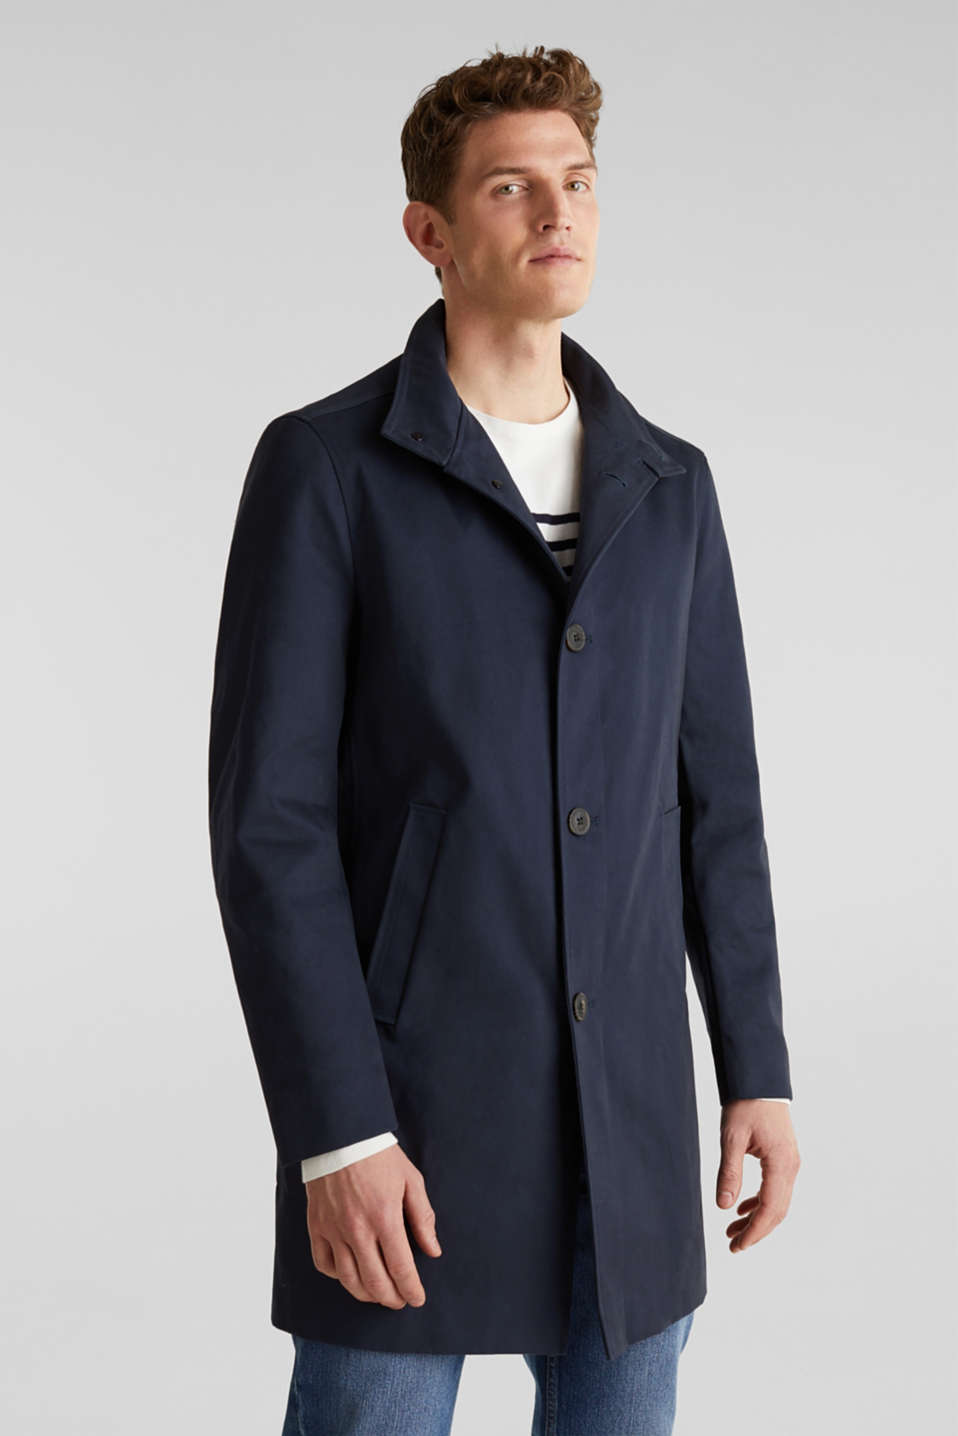 Esprit - Coat with a stand-up collar, 100% cotton